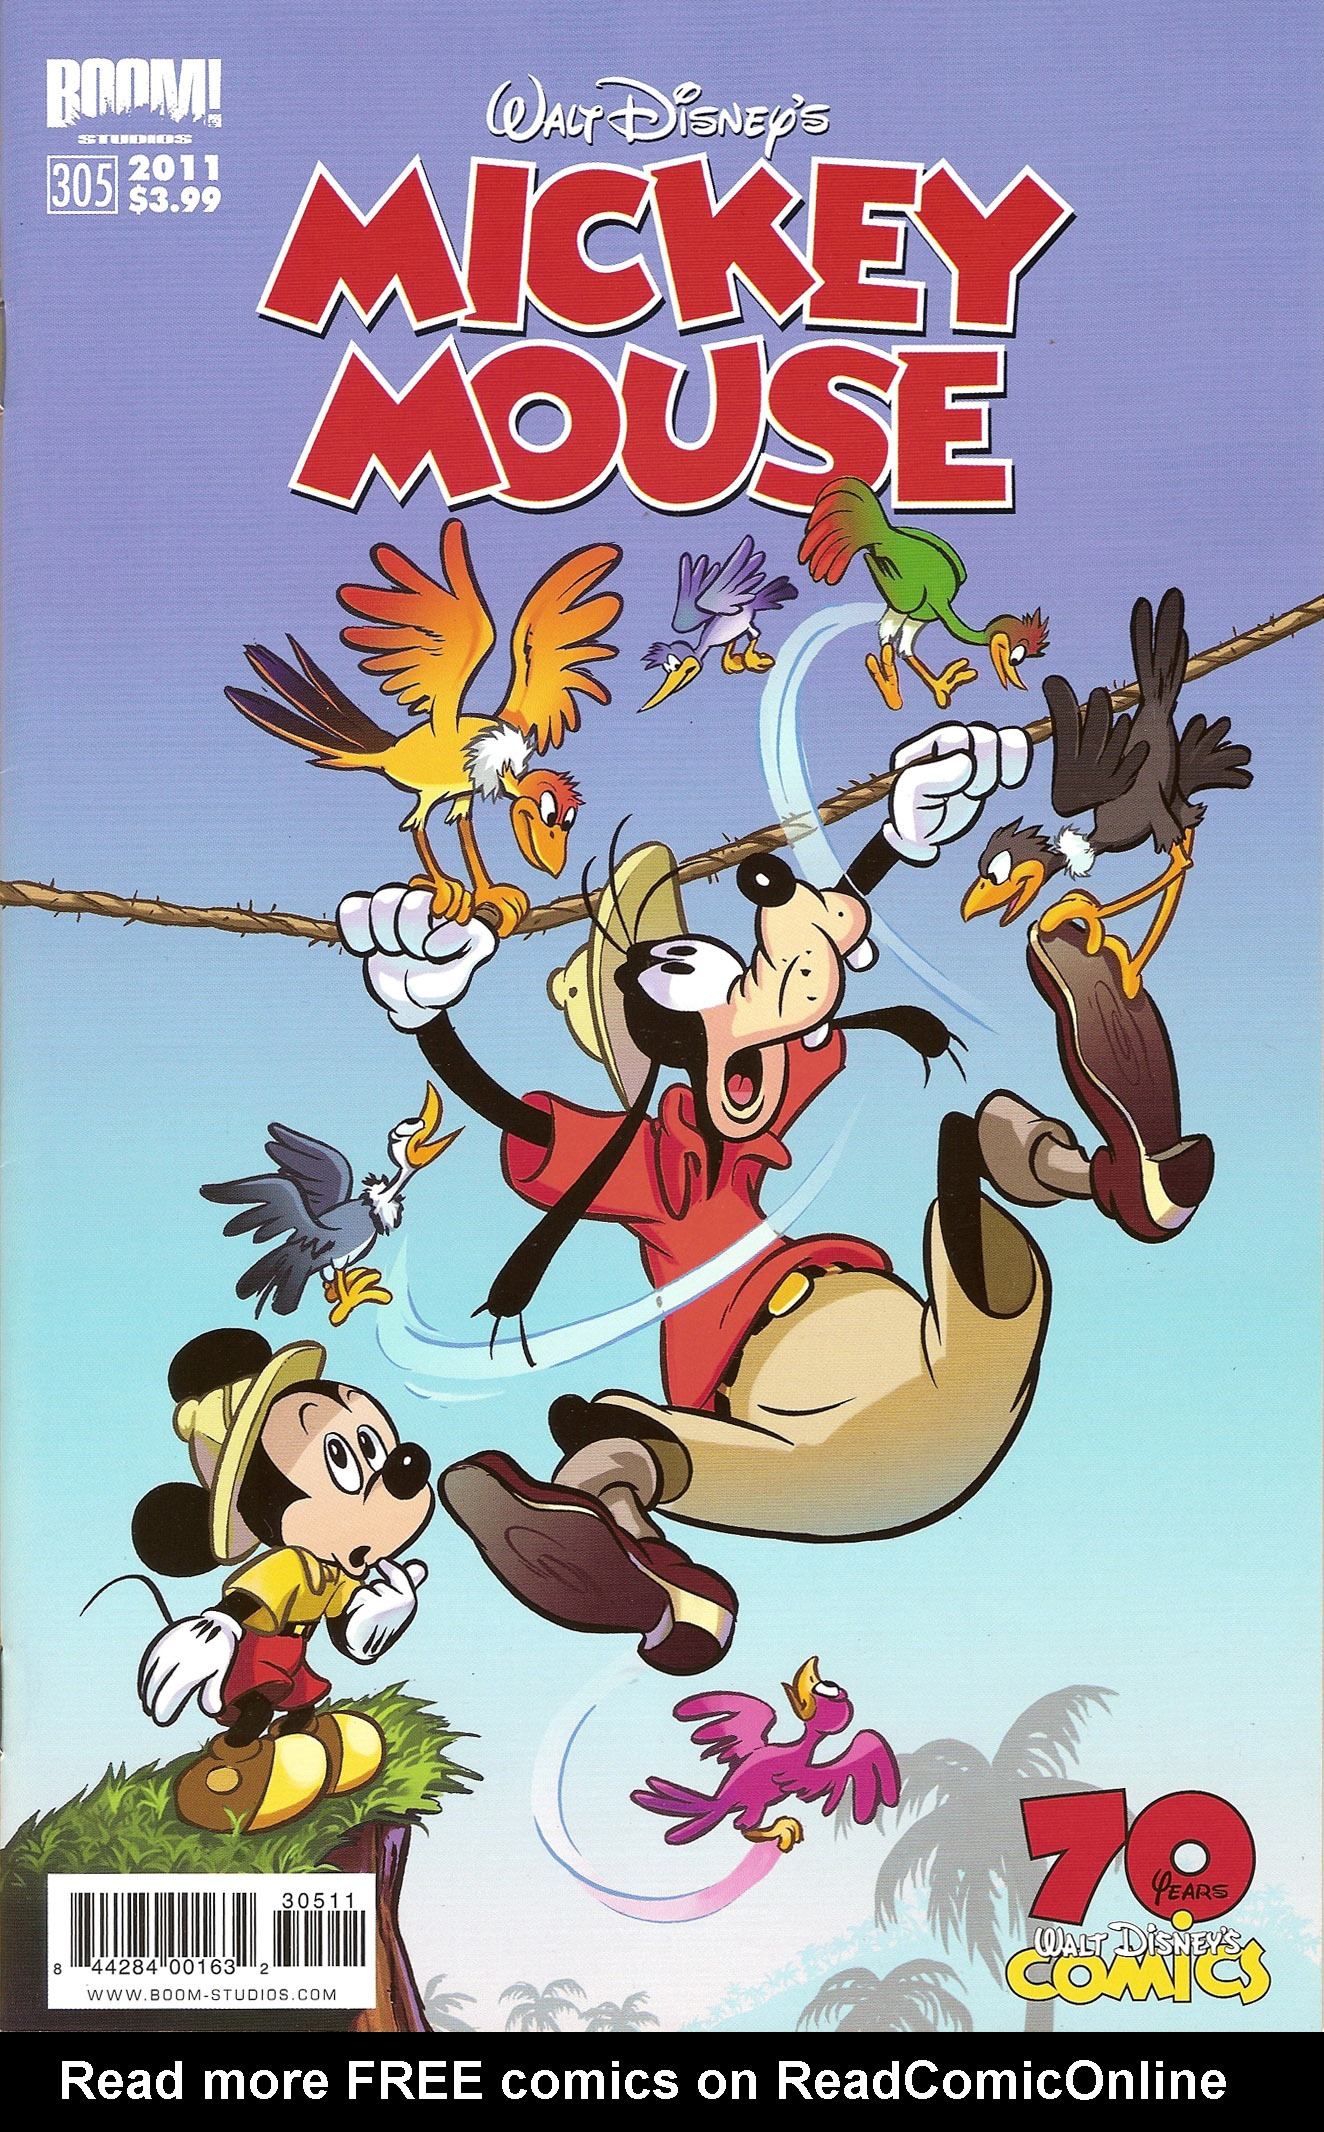 Read online Mickey Mouse (2011) comic -  Issue #305 - 1